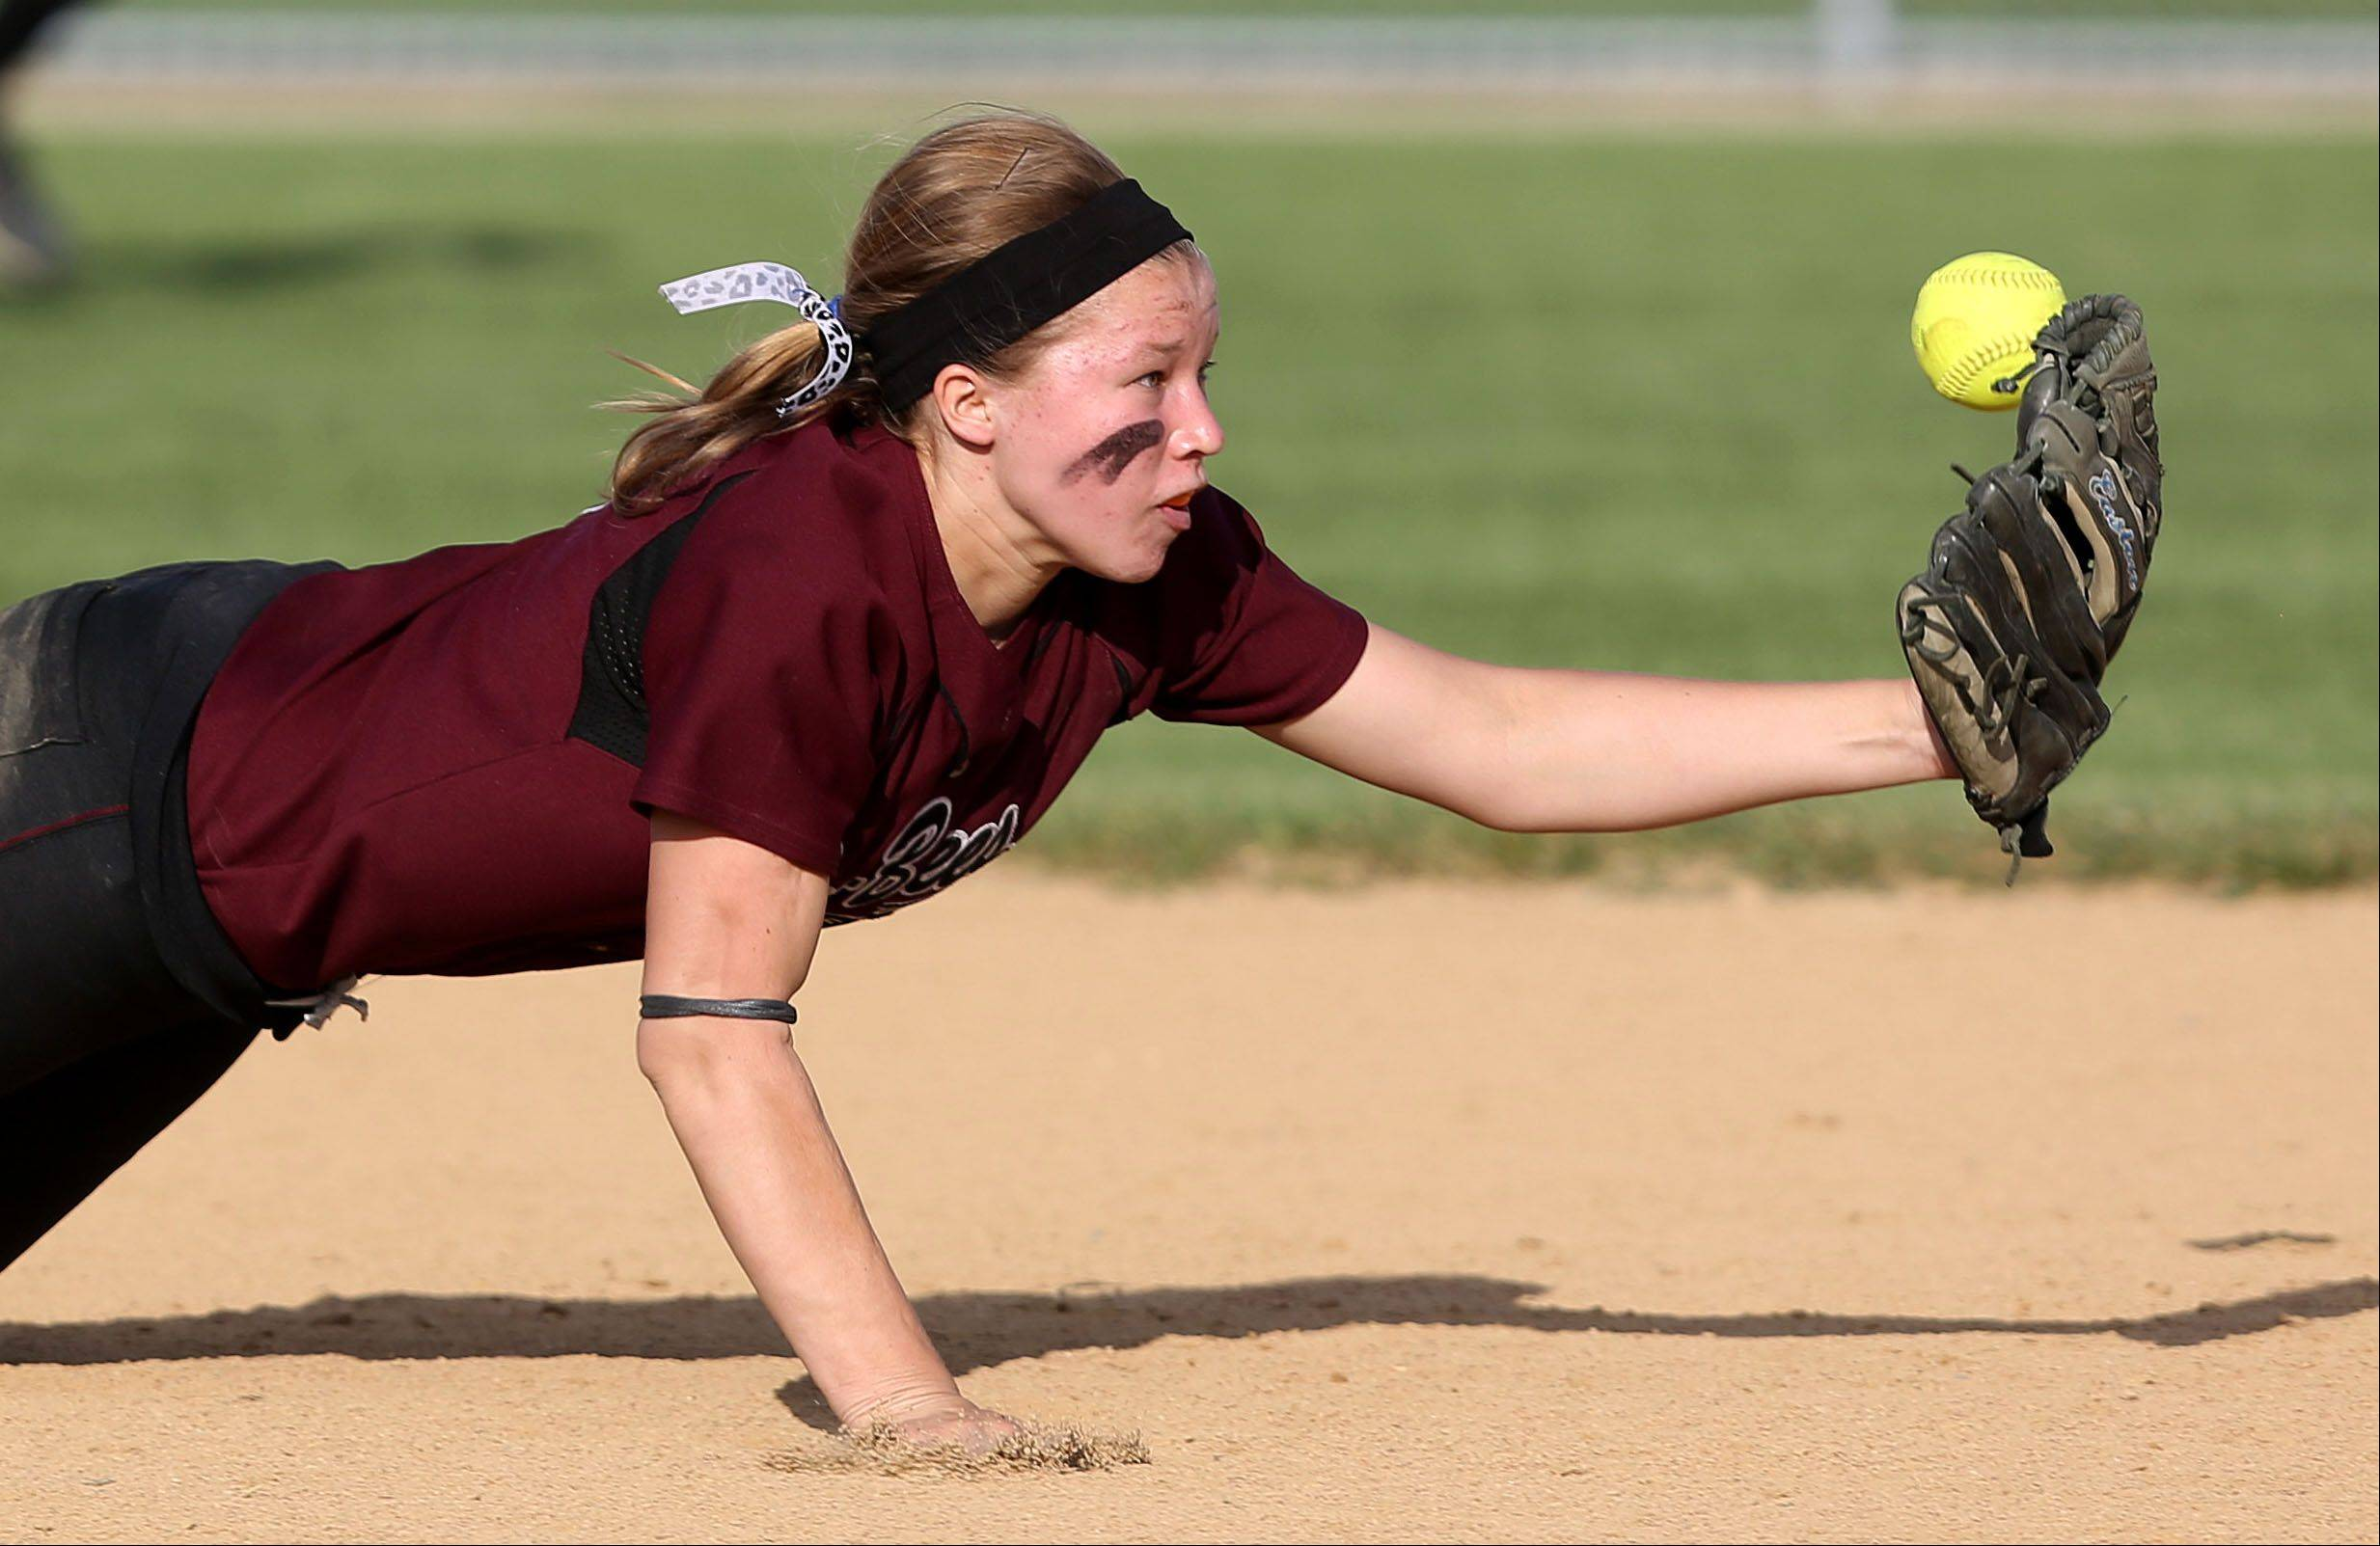 Zion-Benton's Janie Torola makes a diving attempt at a hard-hit ground ball; the play resulted in the first run of the NSC championship game against Grant at Zion-Benton on Wednesday.